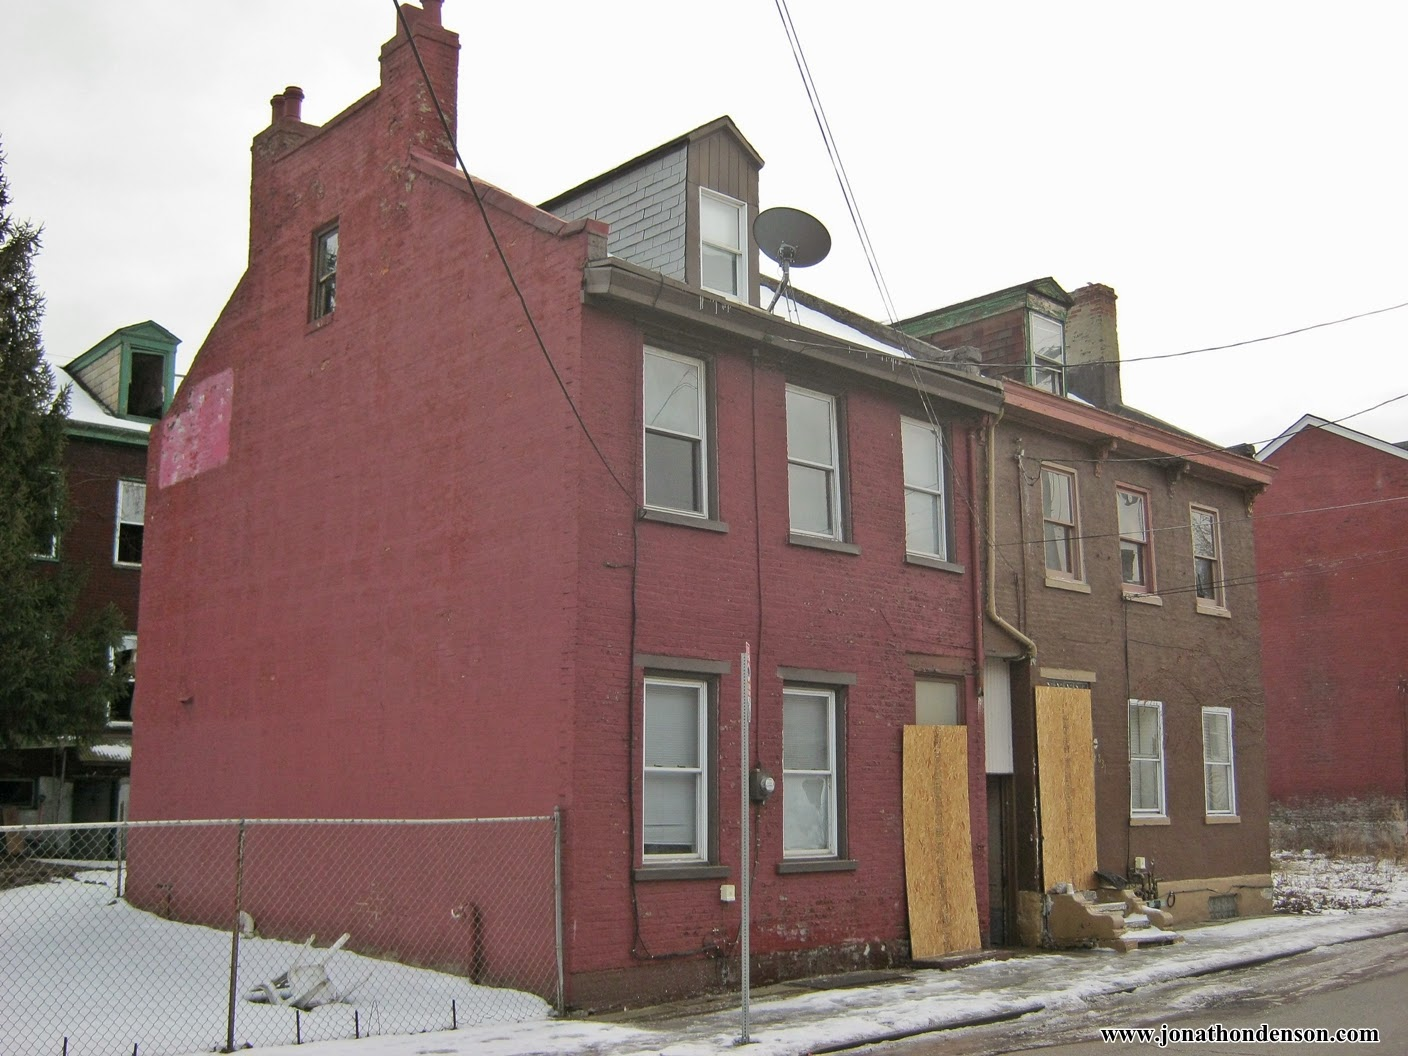 Age Of House Eligible For Historic Designation